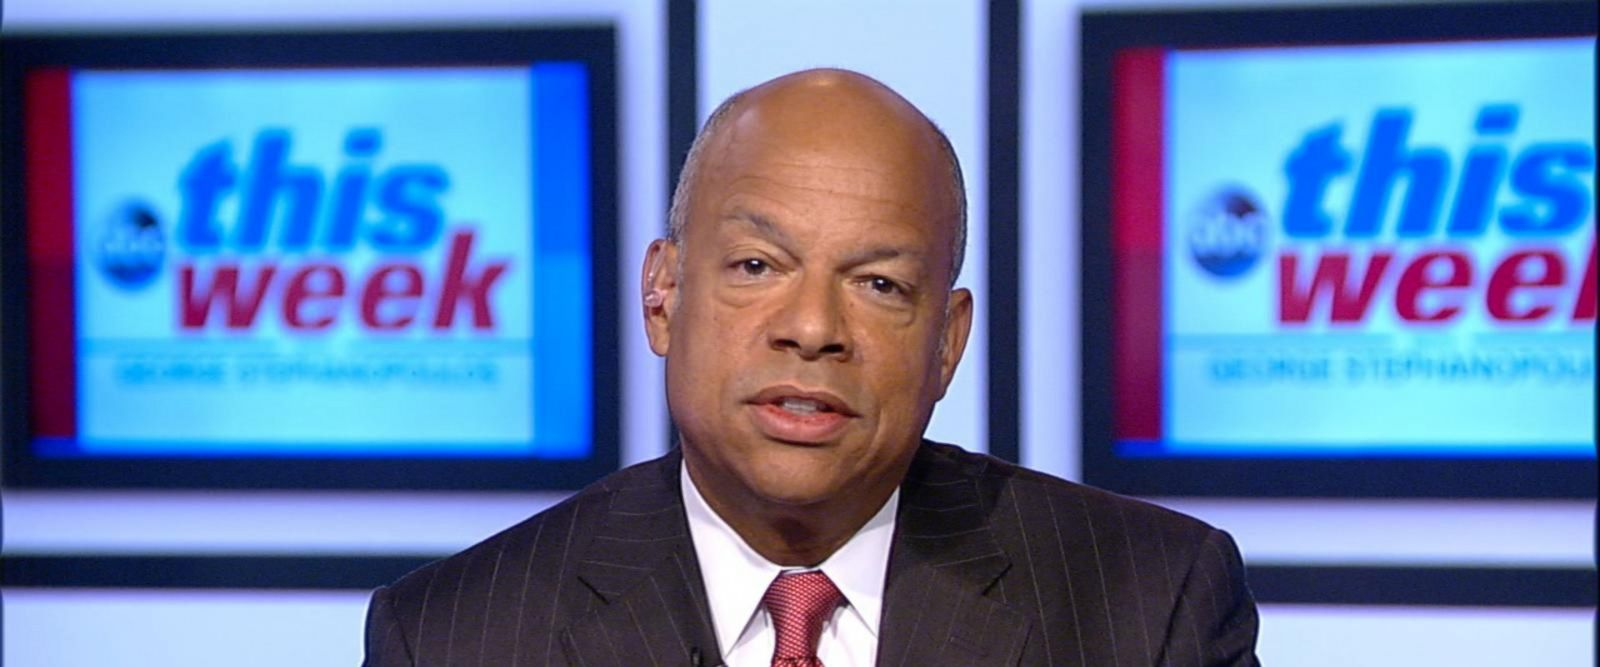 VIDEO: One-on-one with Obama Homeland Security Secretary Jeh Johnson